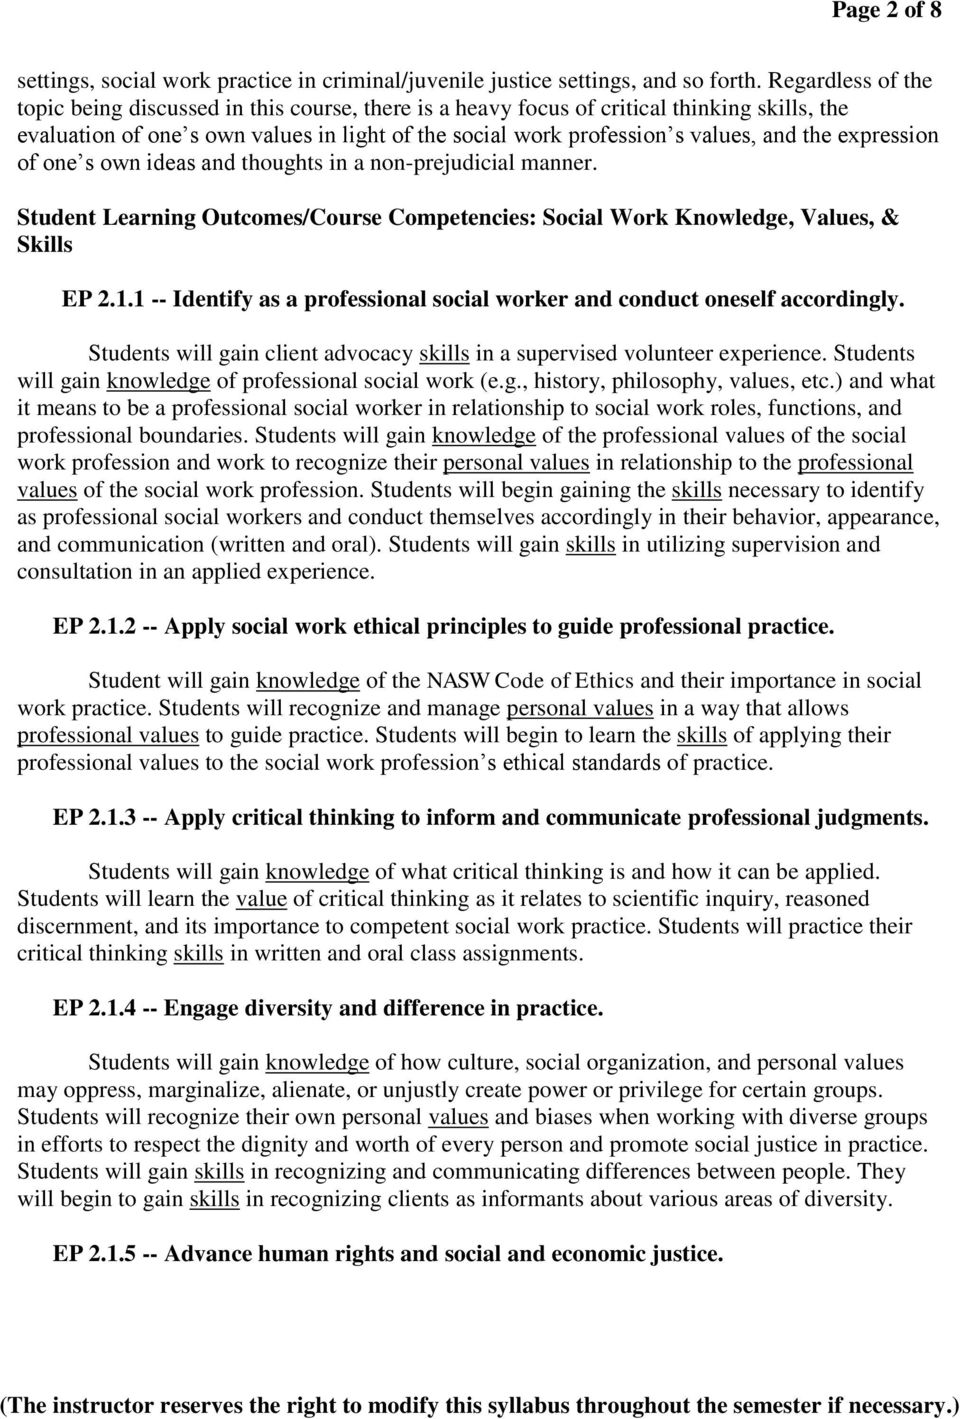 expression of one s own ideas and thoughts in a non-prejudicial manner. Student Learning Outcomes/Course Competencies: Social Work Knowledge, Values, & Skills EP 2.1.